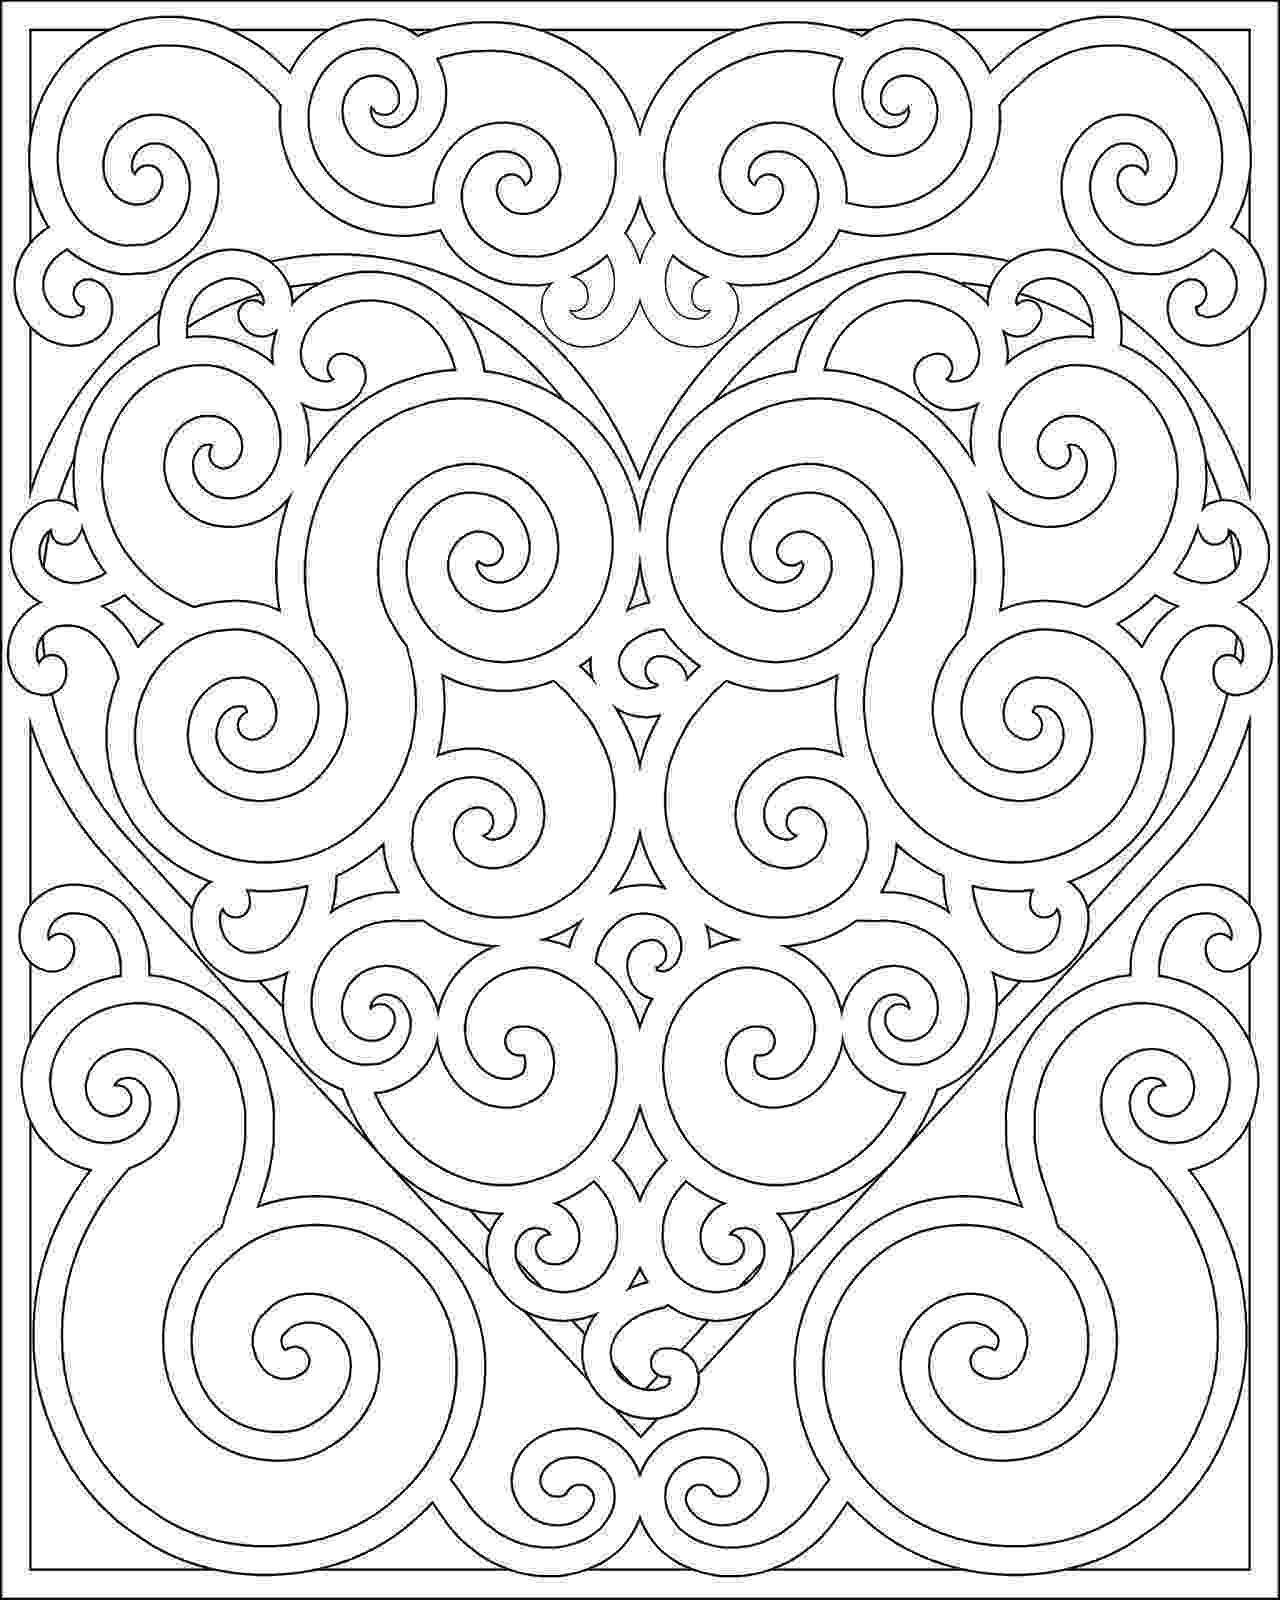 pattern to colour floral pattern coloring page free printable coloring pages pattern colour to